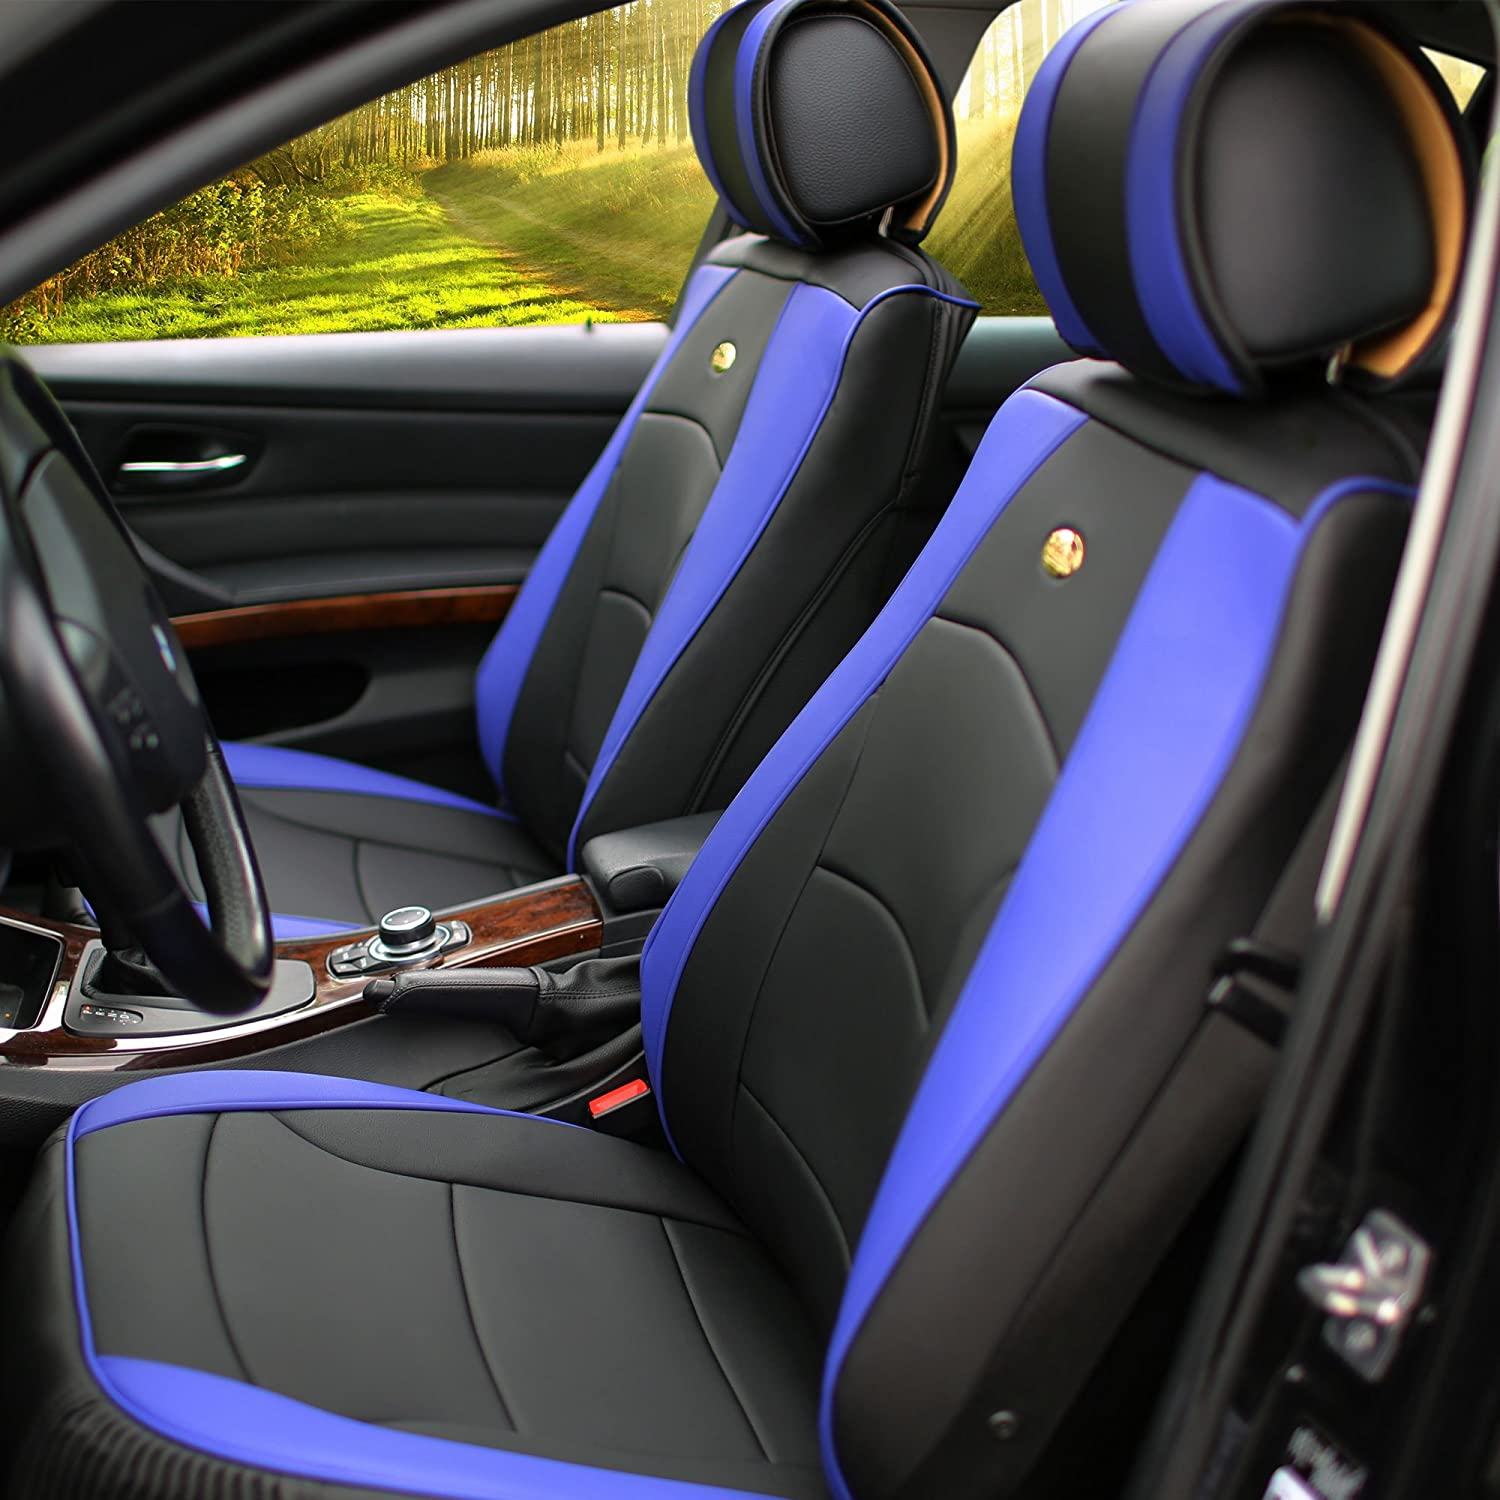 FH Group PU205102 Ultra Comfort Leatherette Front Seat Cushions Blue/Black Color- Fit Most Car, Truck, SUV, or Van